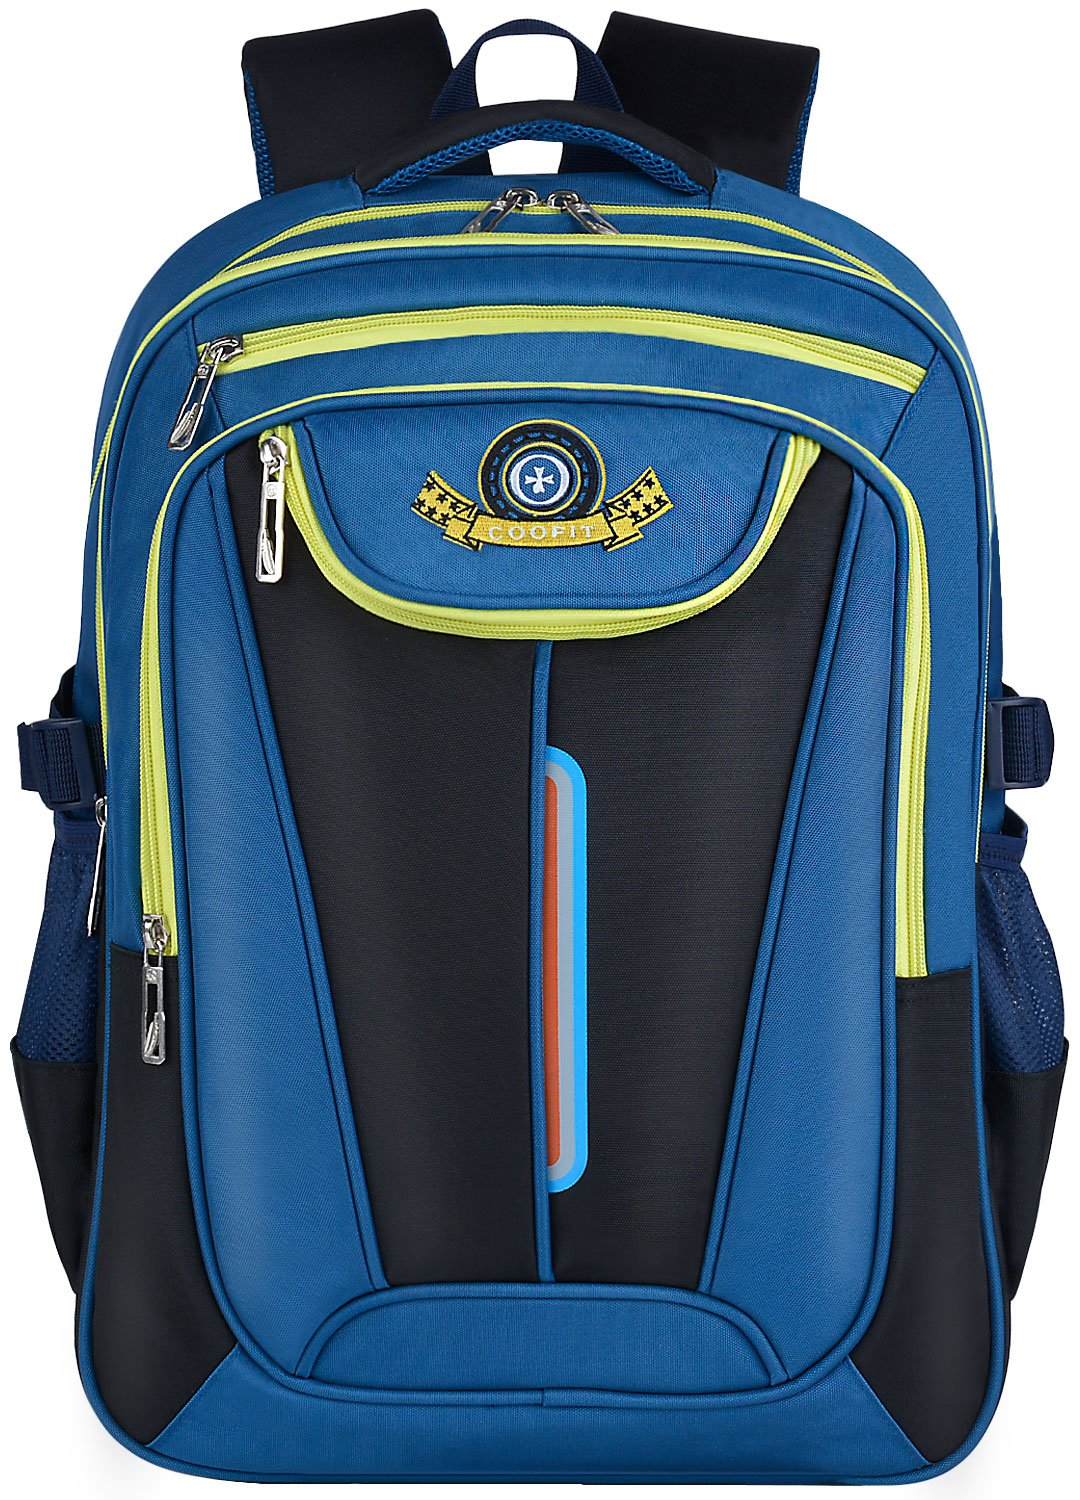 School Bags, Coofit School Backpack Kids Backpack Childrens Backpacks for  Girls Boys  Amazon.co.uk  Luggage 8f383d42fe